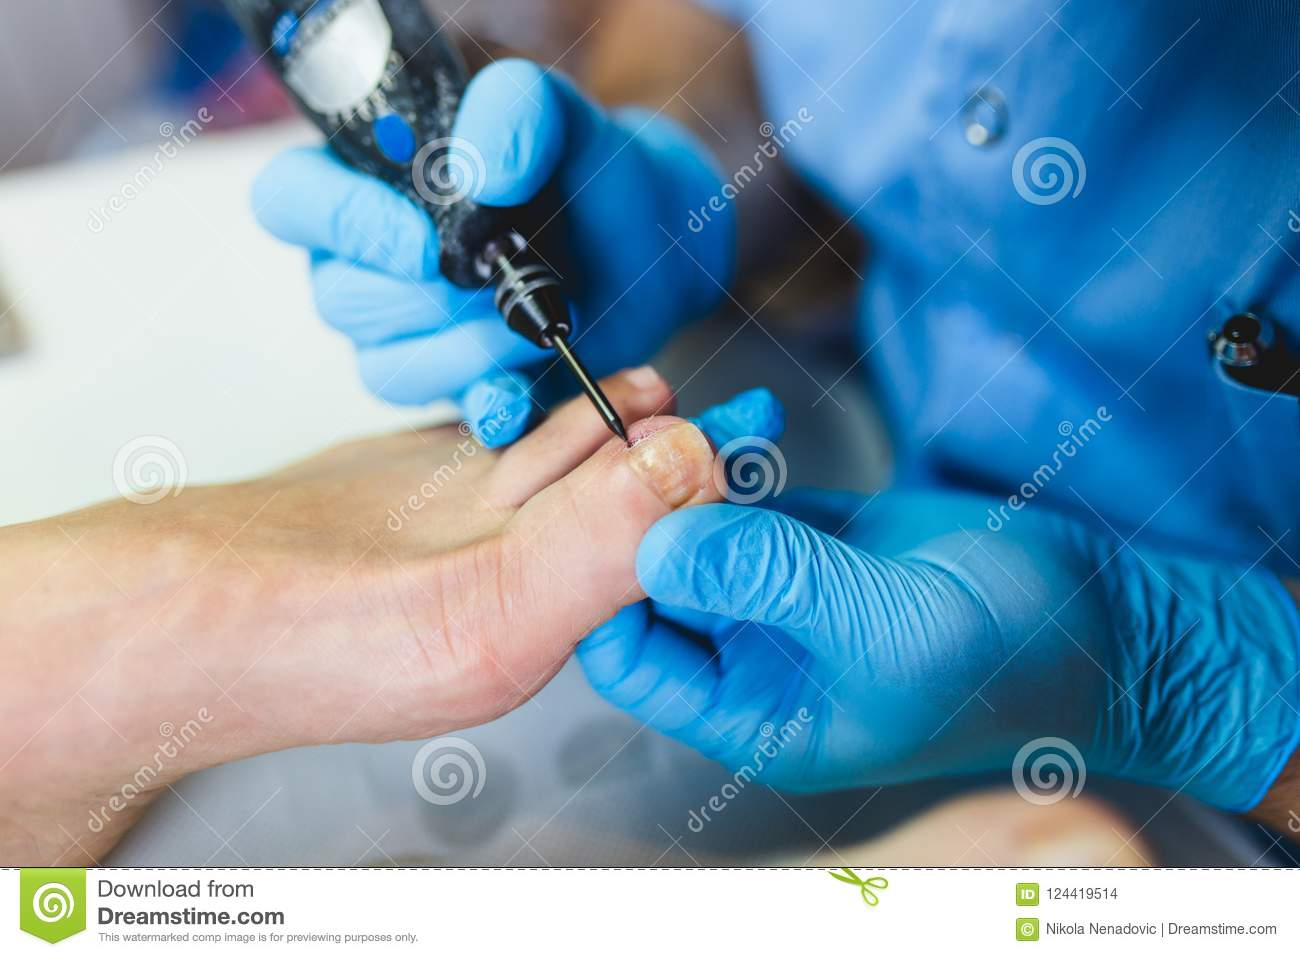 Medical toenail treatment stock photo. Image of device - 124419514